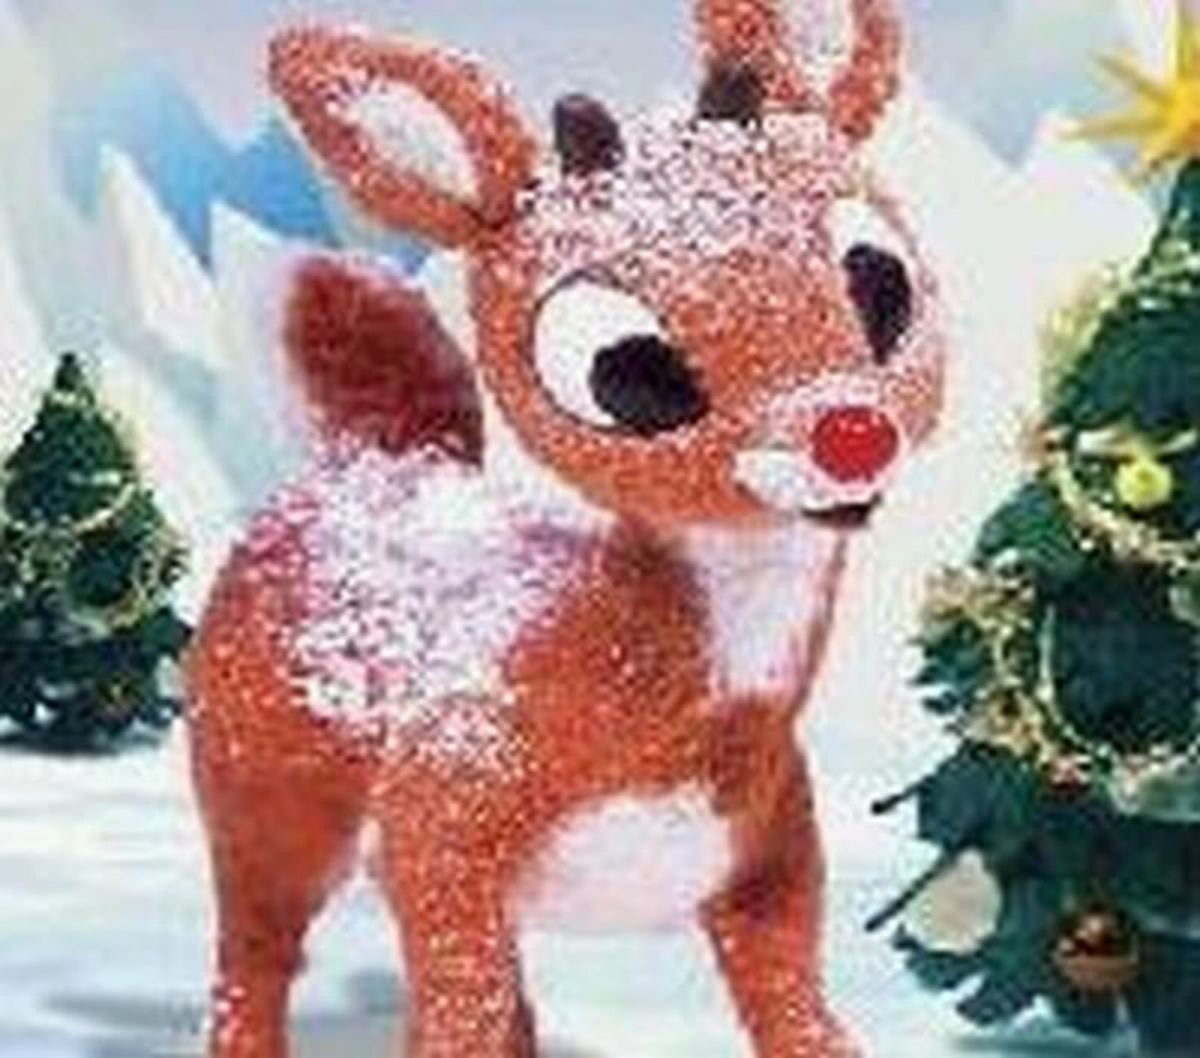 Rankin/Bass Retrospective - Rudolph the Red-Nosed Reindeer